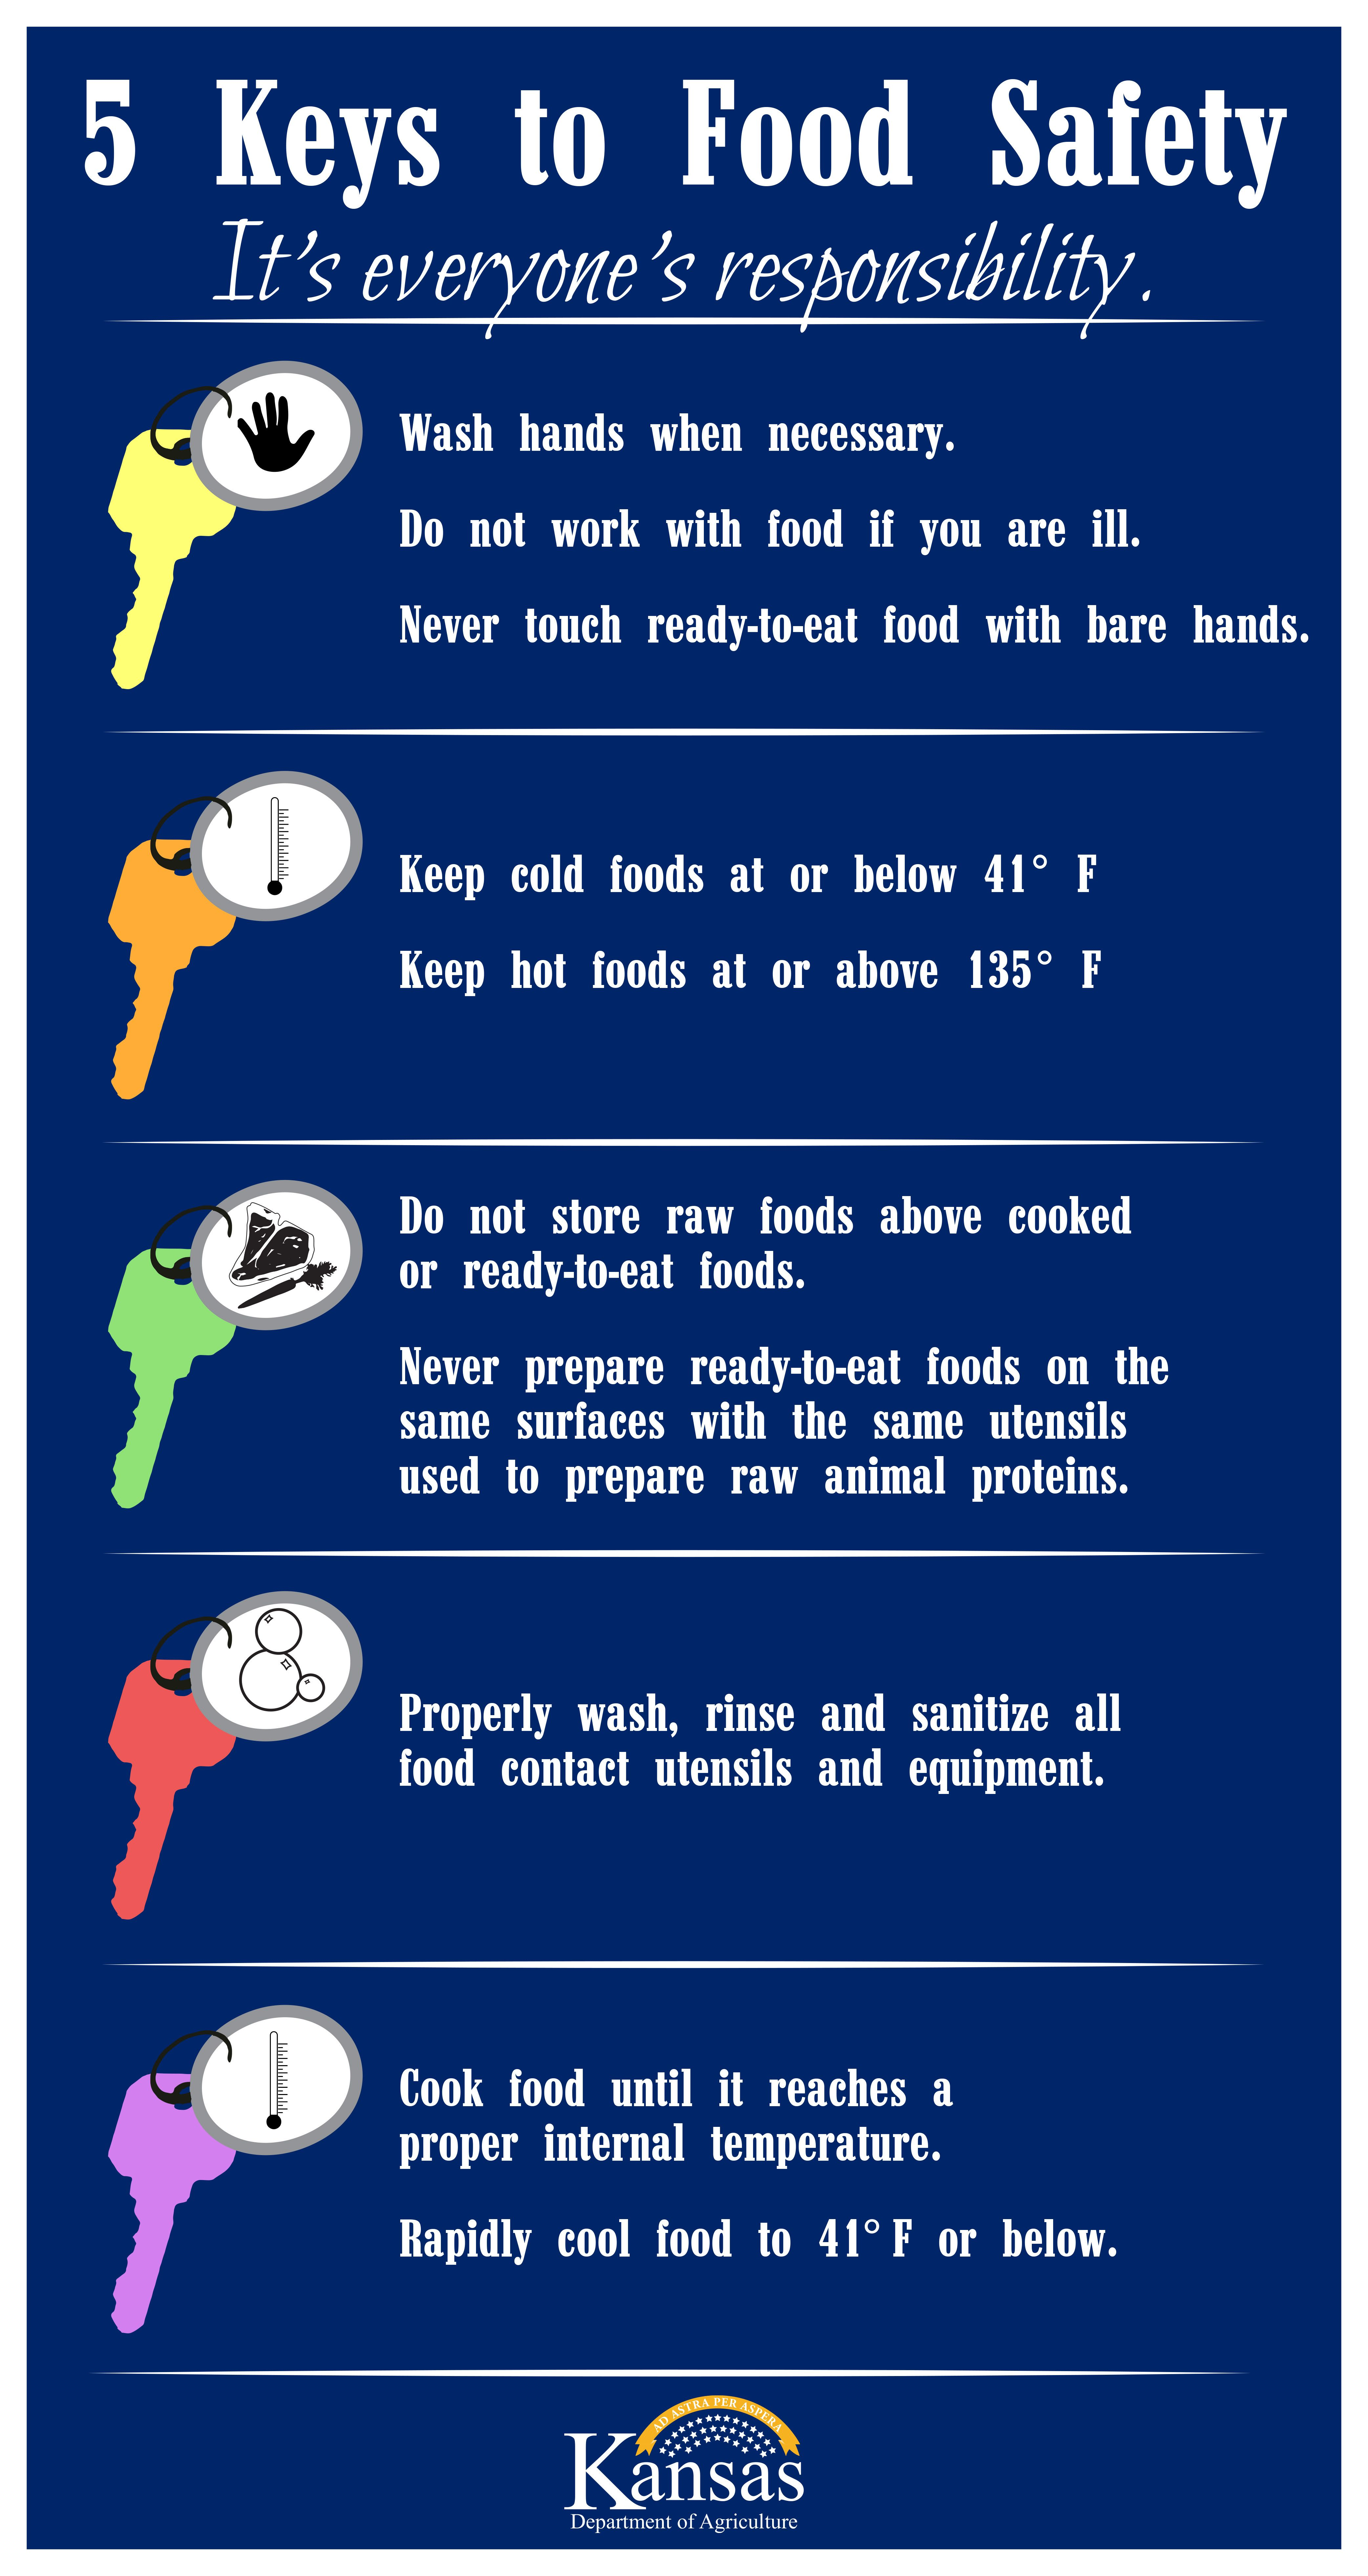 Food Safety Is Everyone S Responsibility These 5 Keys Can